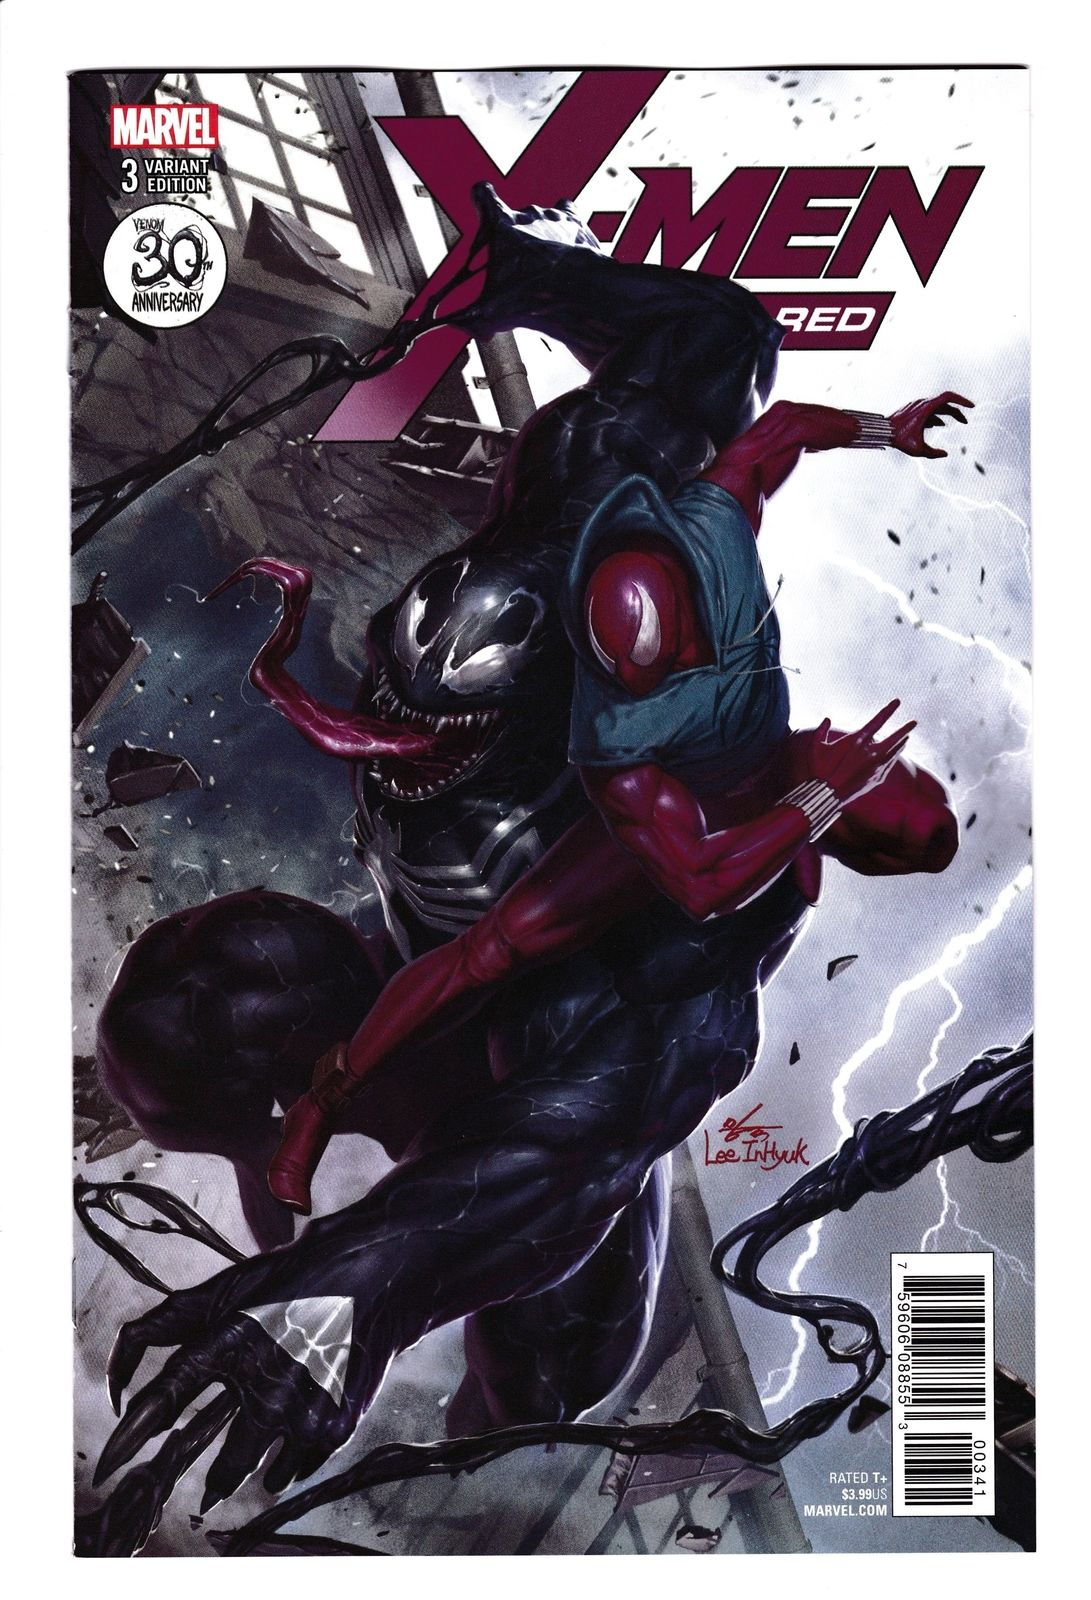 X-Men Red #3 Venom 30th Anniversary Variant (Marvel, 2018